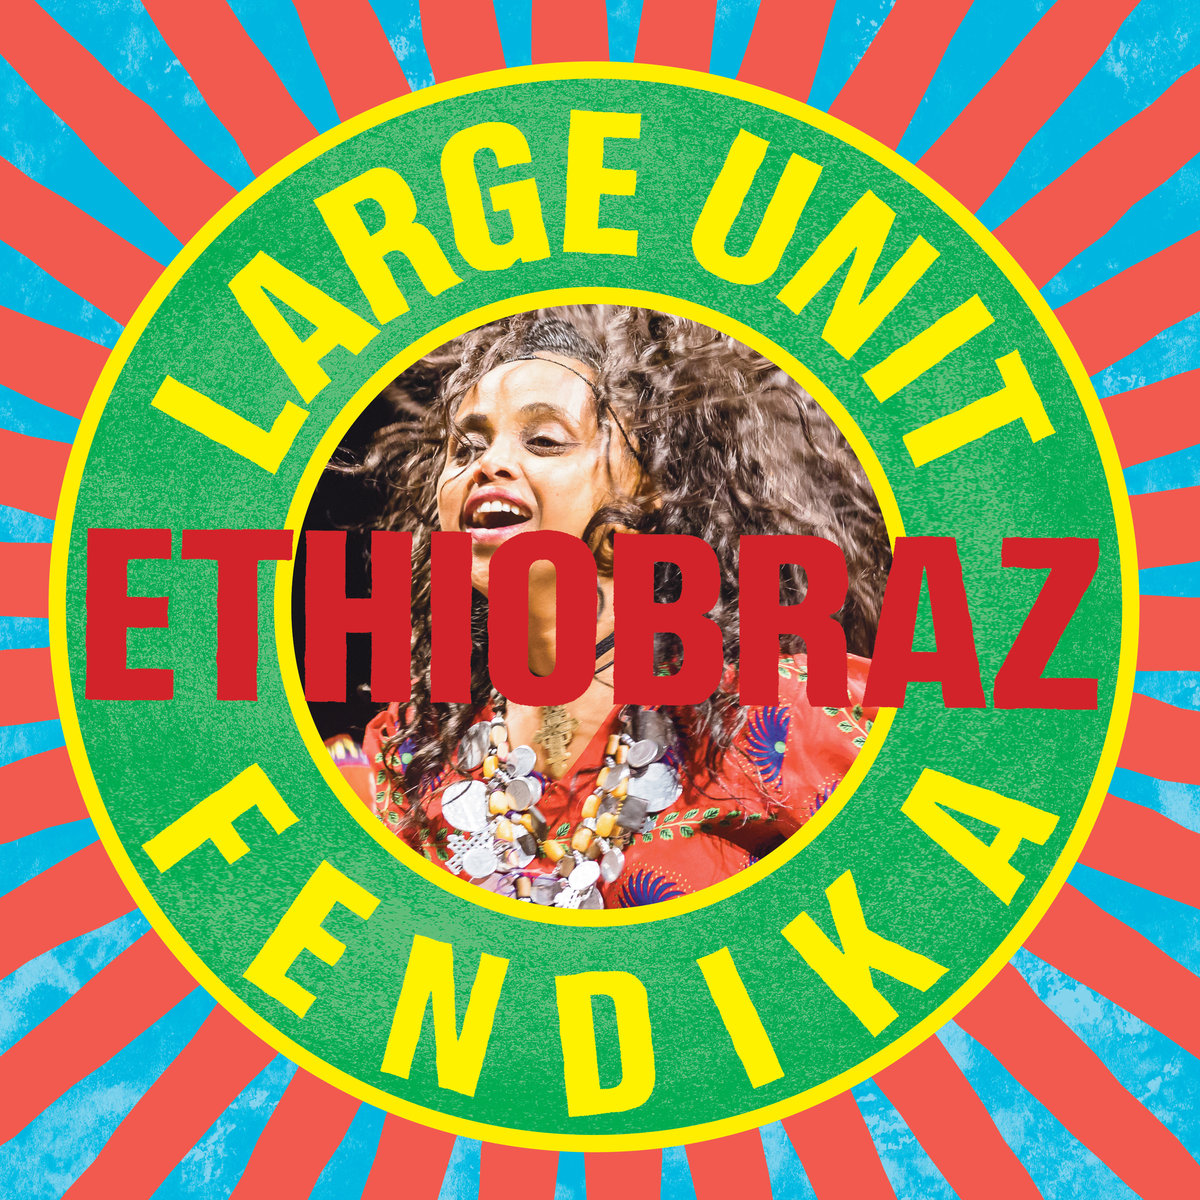 Ethiobraz - Large Unit